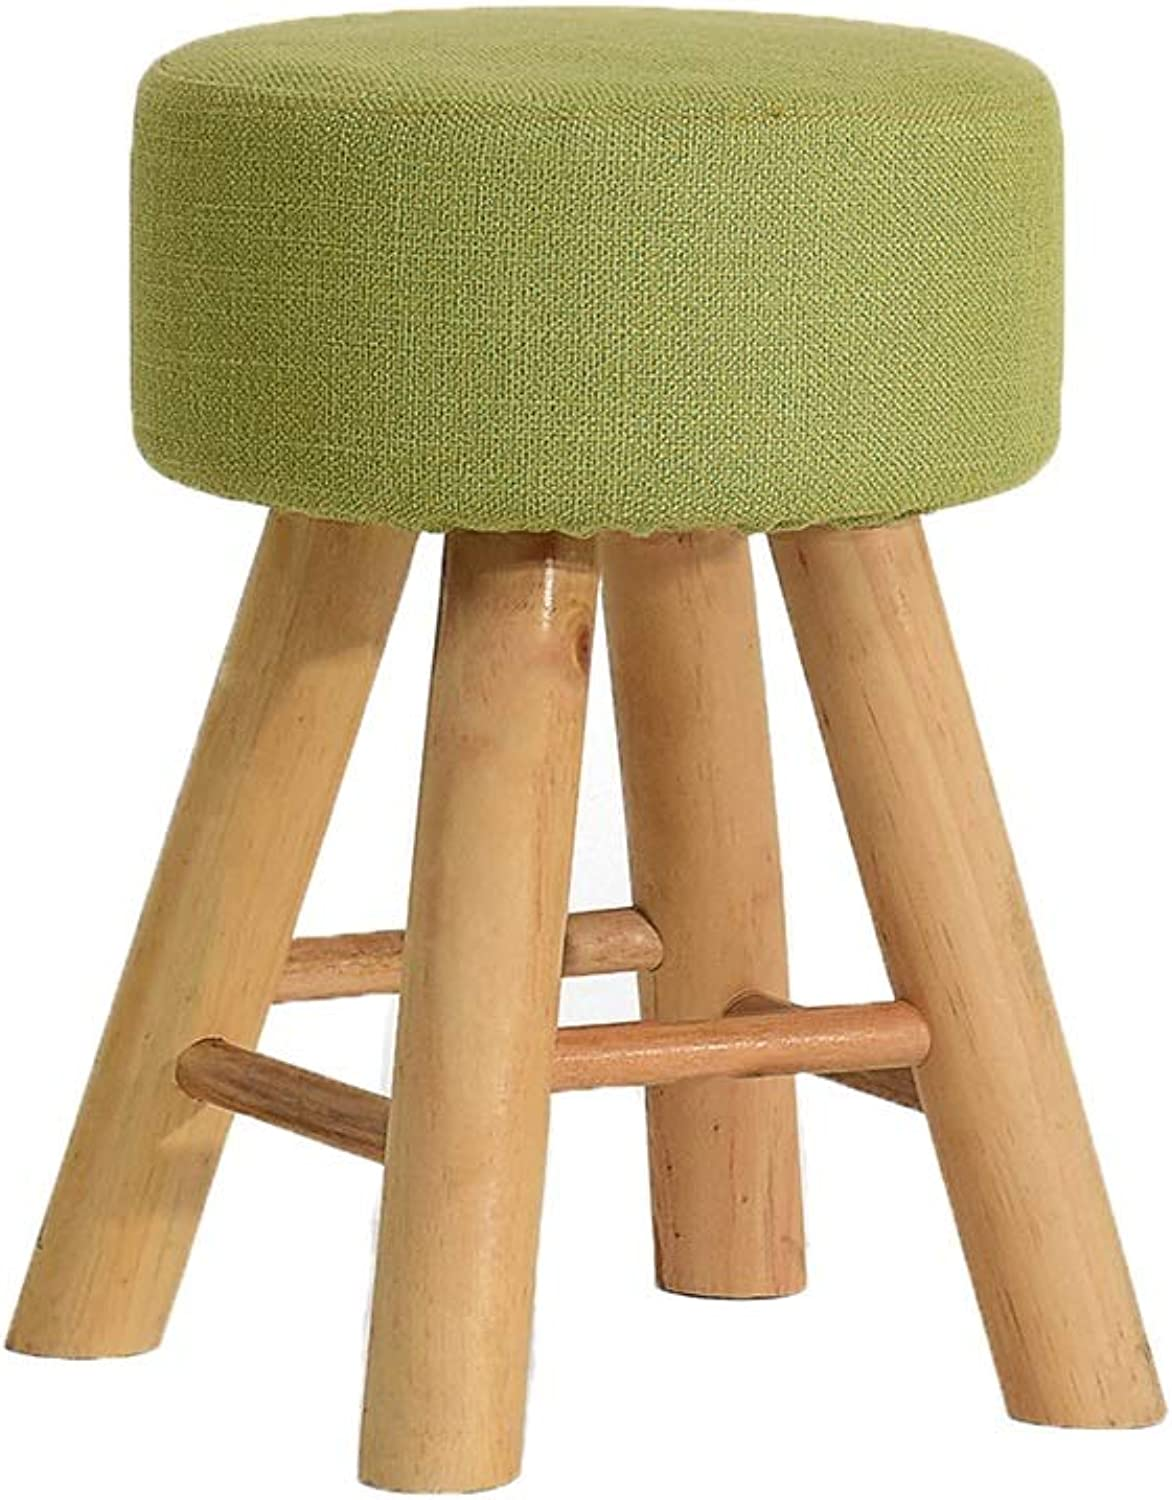 Small Stools Beech Stools Legs Square Dining Stool Dressing Makeup Stool Home Stool (color   A)